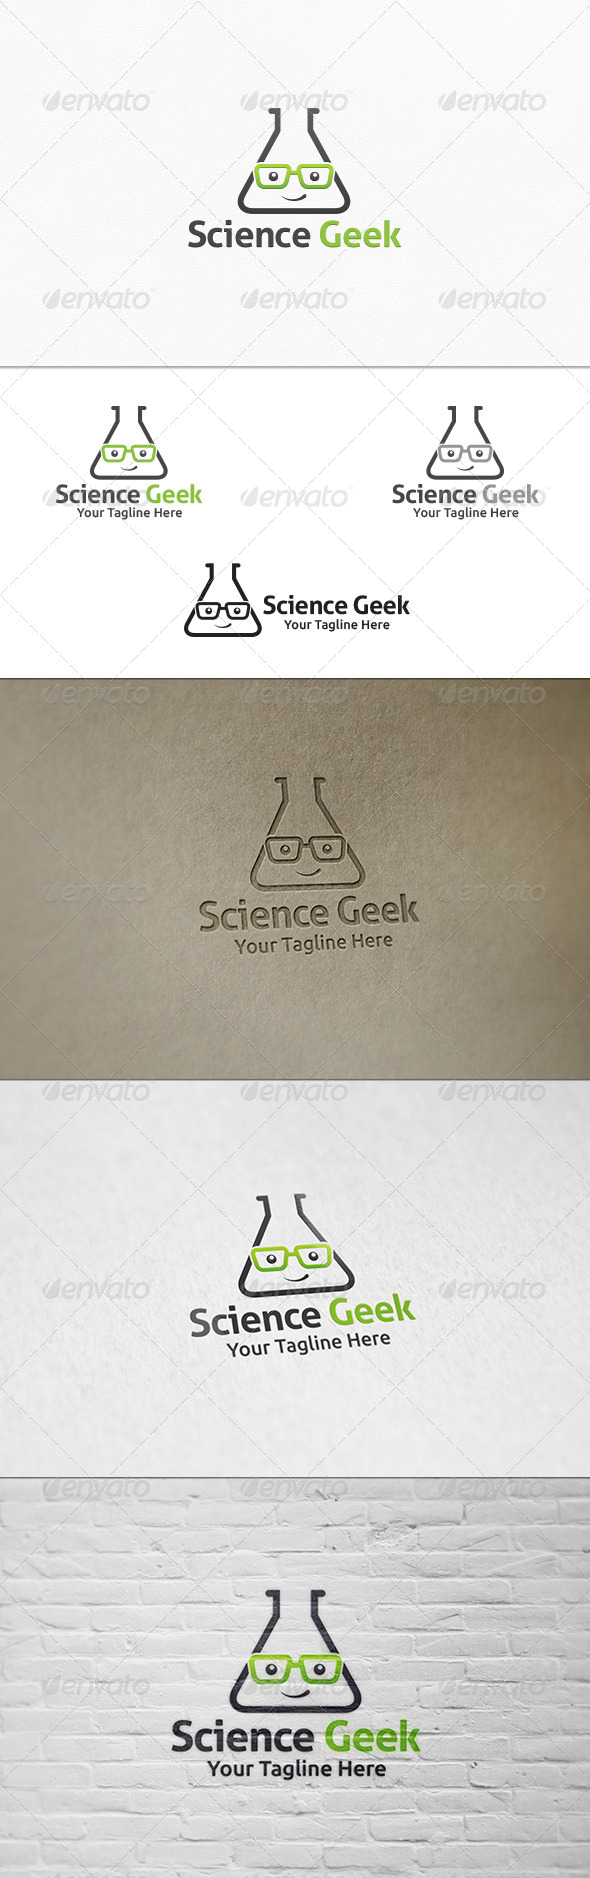 GraphicRiver Science Geek Logo Template 7571016